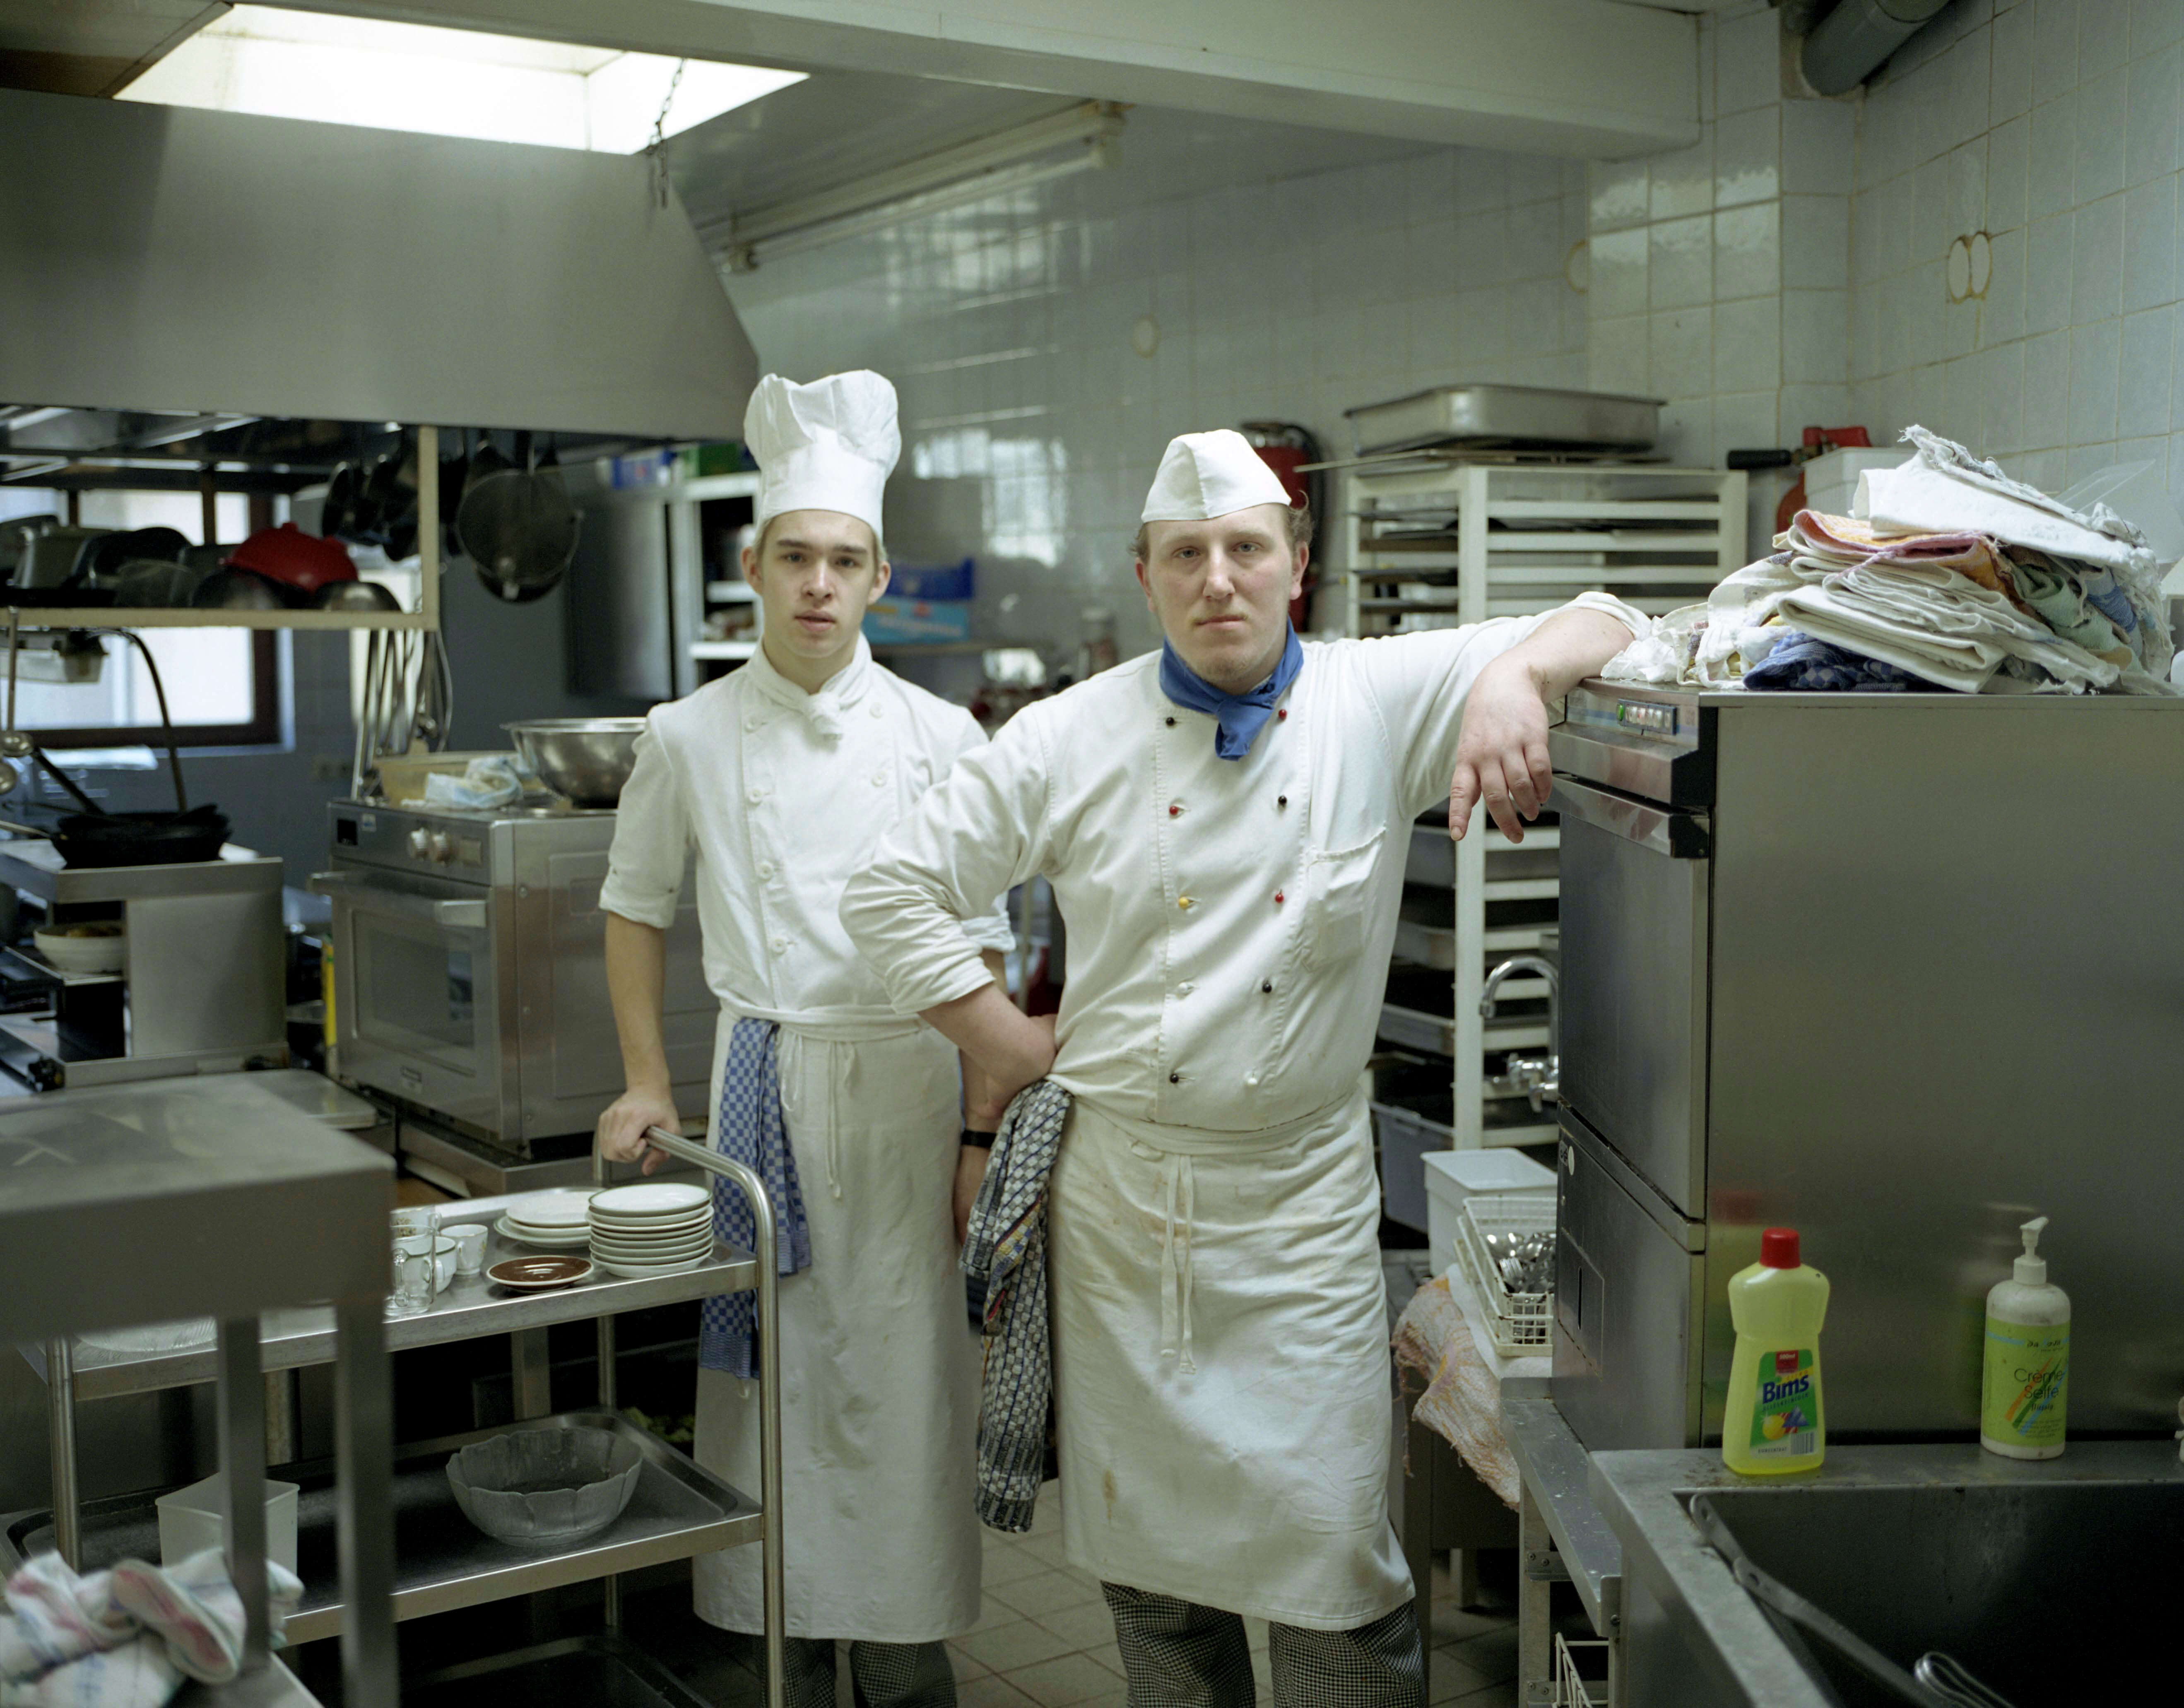 Toby Glanville, Rhine Chefs, The south west collective of photography ltd